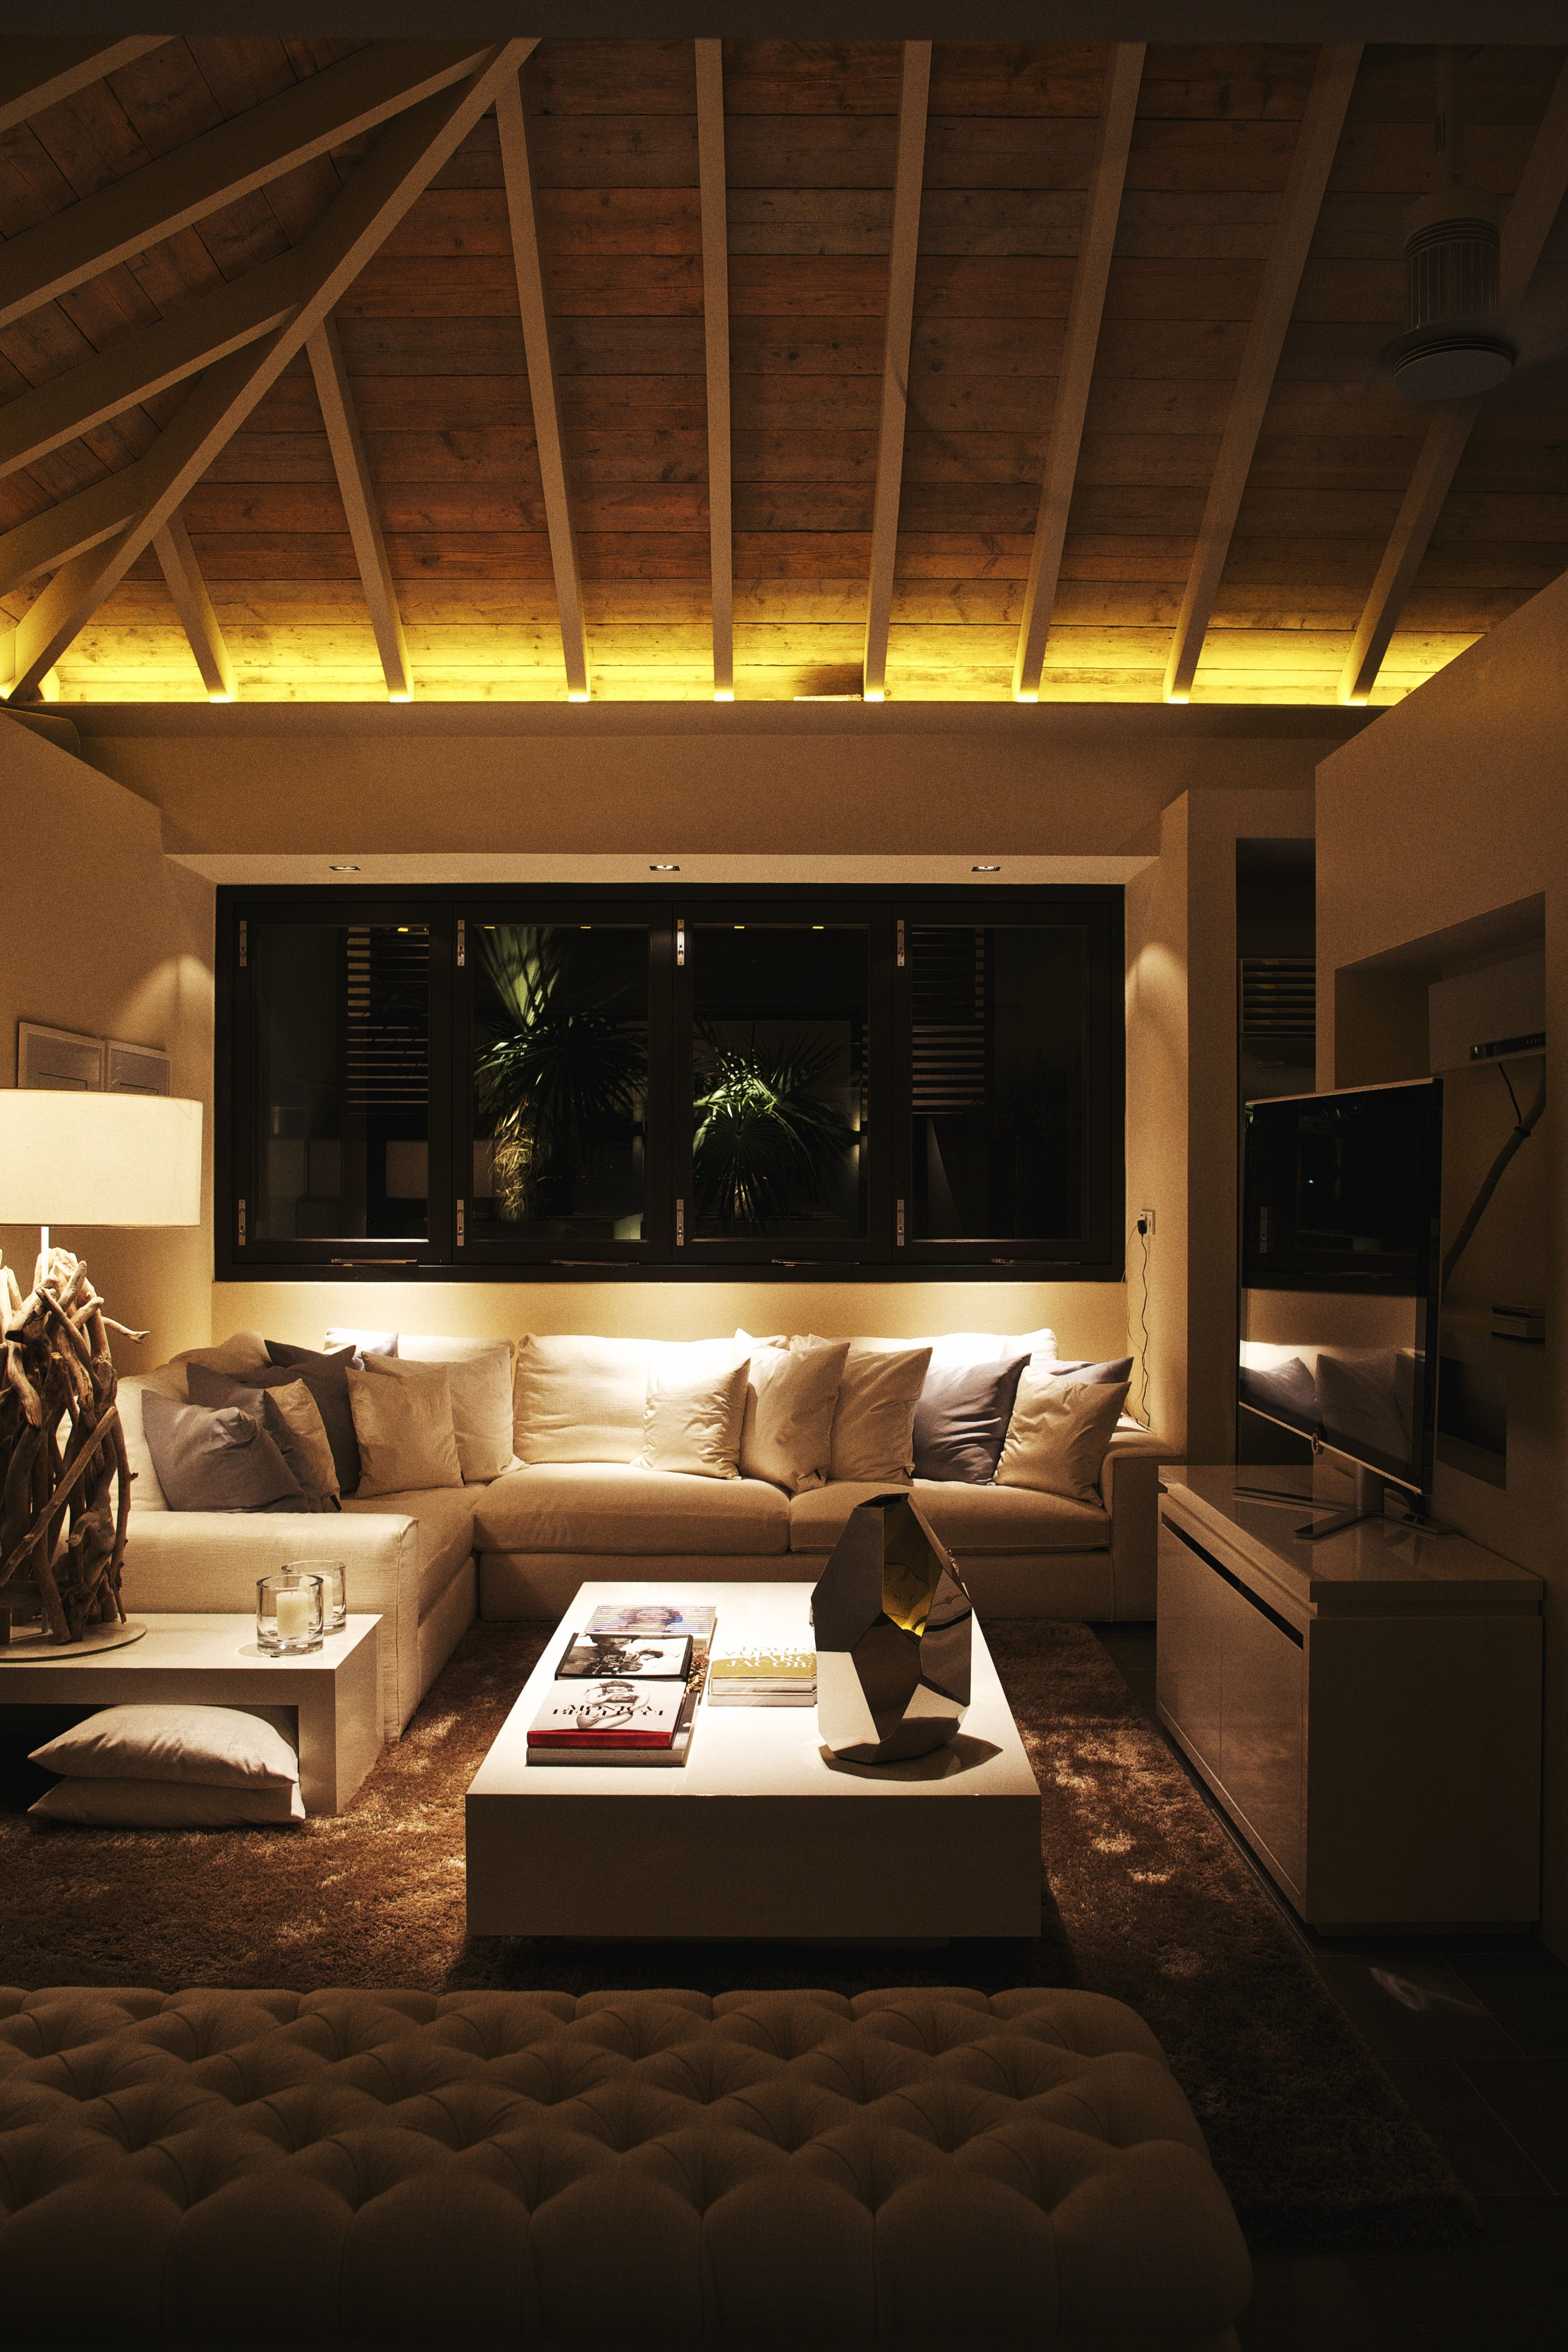 Discover beautiful interiors by Eric Kuster an